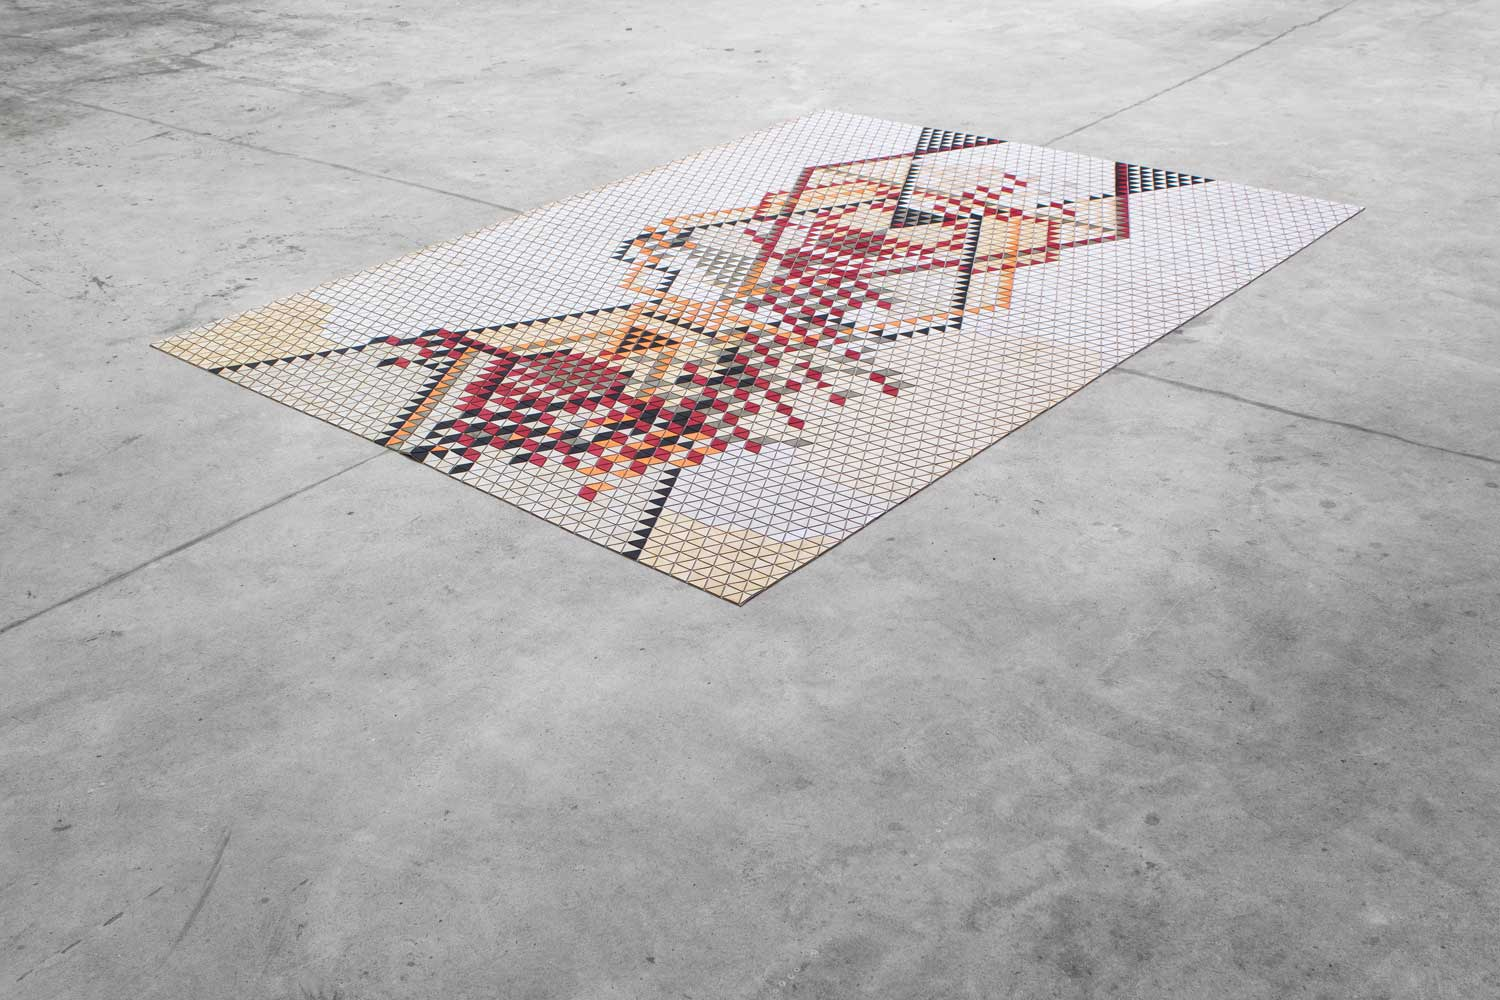 Red Wooden Textile by Elisa Strozyk at Design Days Dubai 2014 Yellowtrace